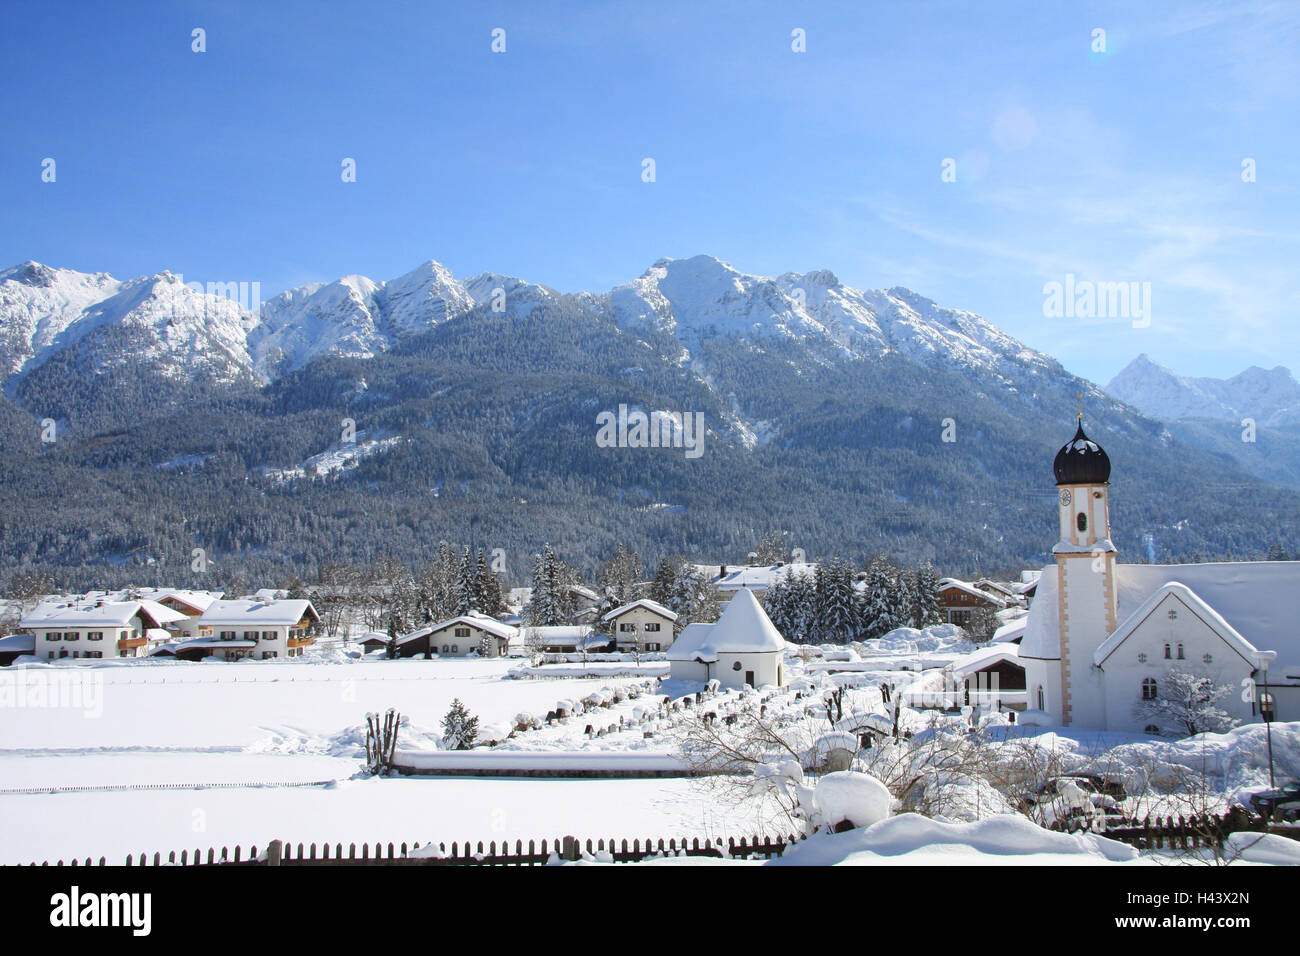 Germany, Bavaria, Werdenfels, embankment region, local view, church, Soiern, South Germany, Upper Bavaria, place, - Stock Image